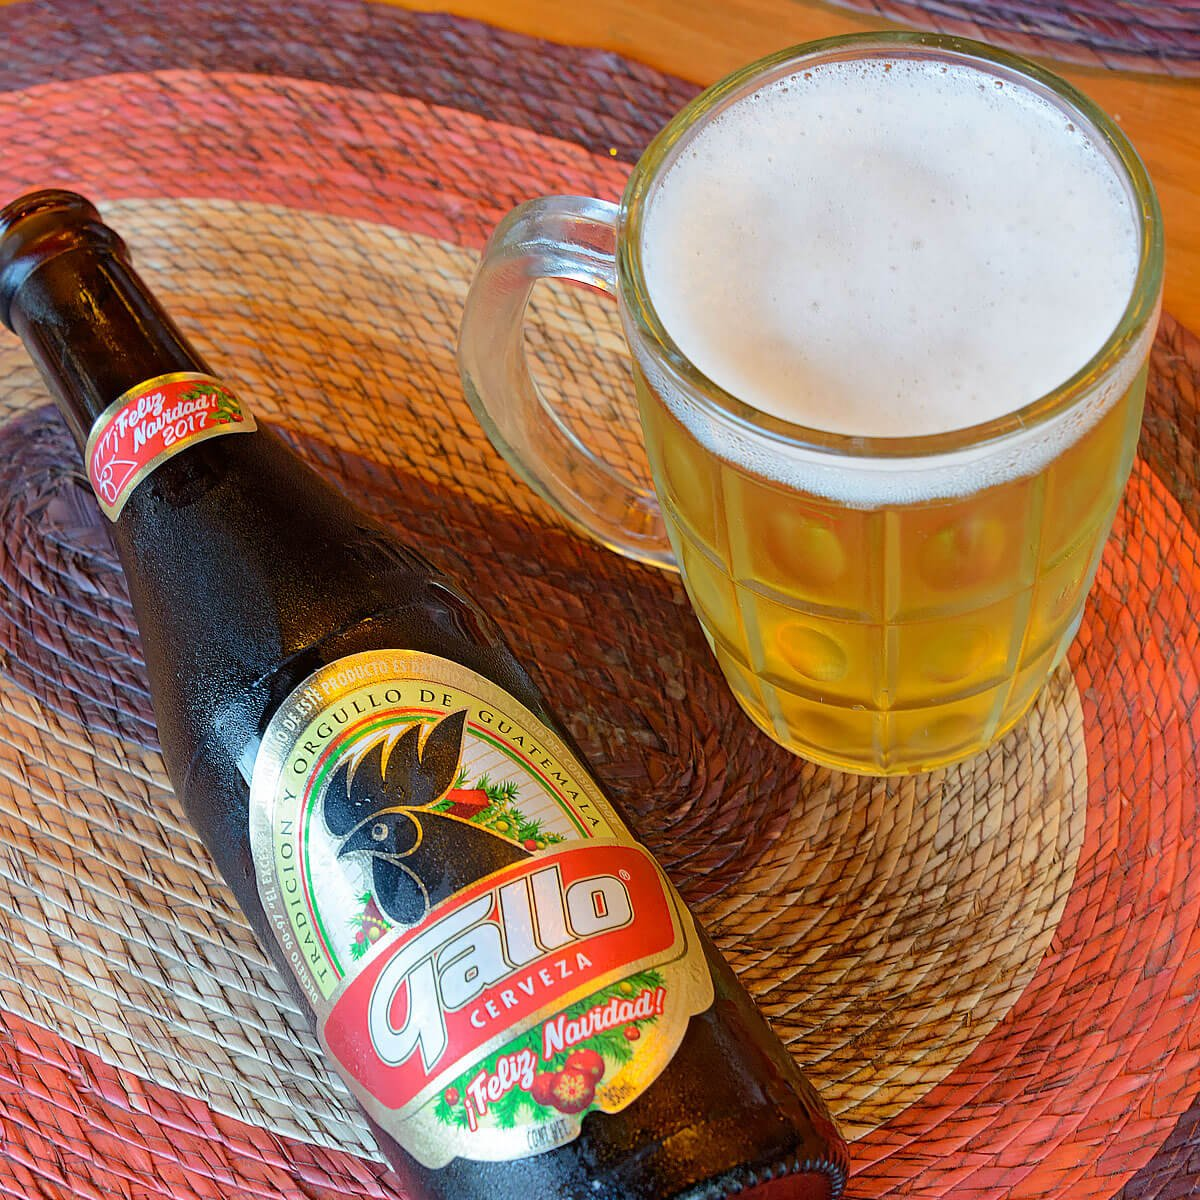 Gallo is a Pale Lager brewed by Cervecería Centro Americana, S.A.